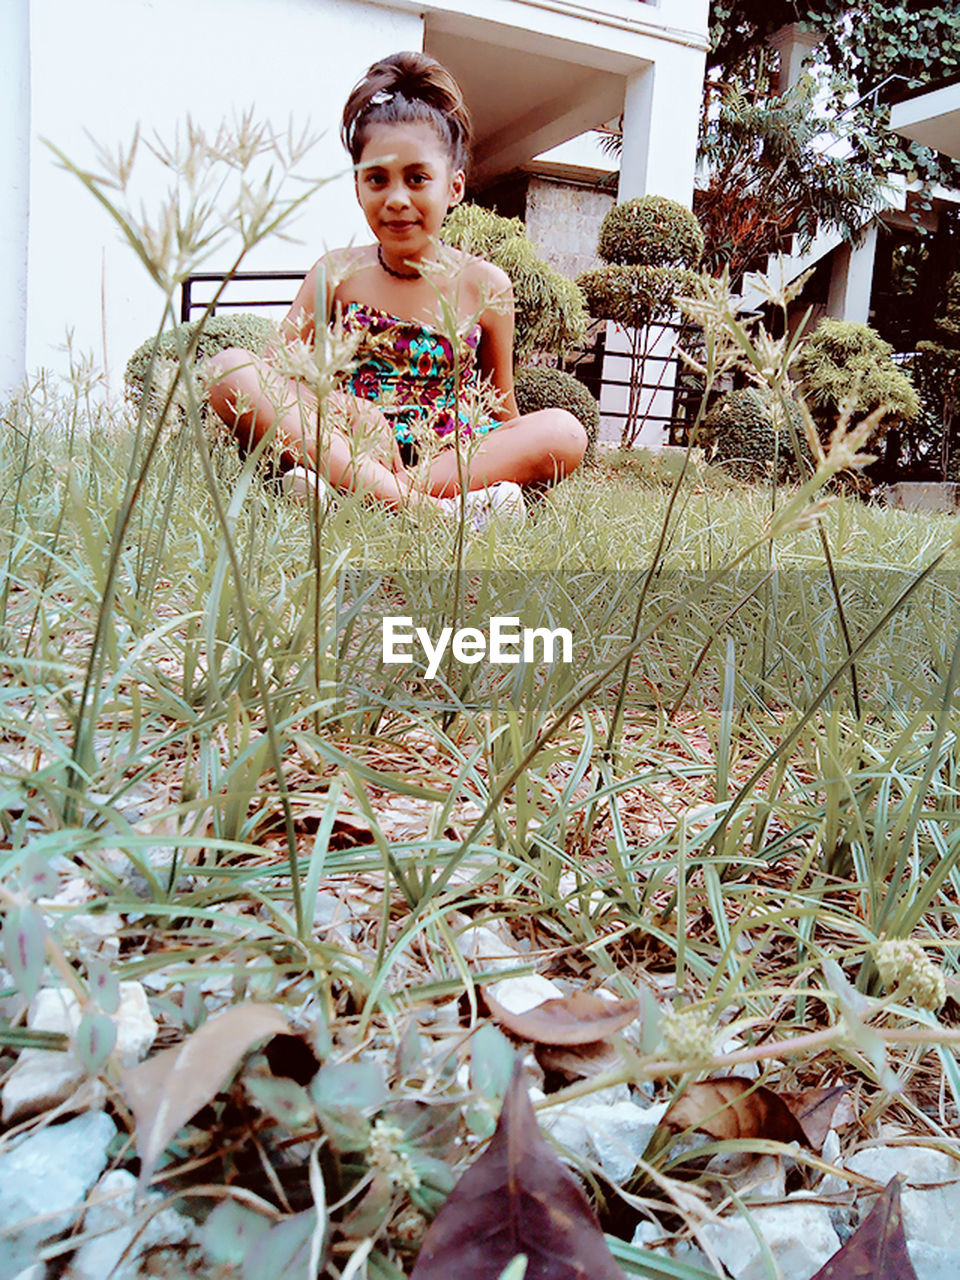 growth, real people, looking at camera, one person, plant, portrait, nature, outdoors, day, field, flower, young women, lifestyles, young adult, grass, beautiful woman, tree, beauty in nature, freshness, people